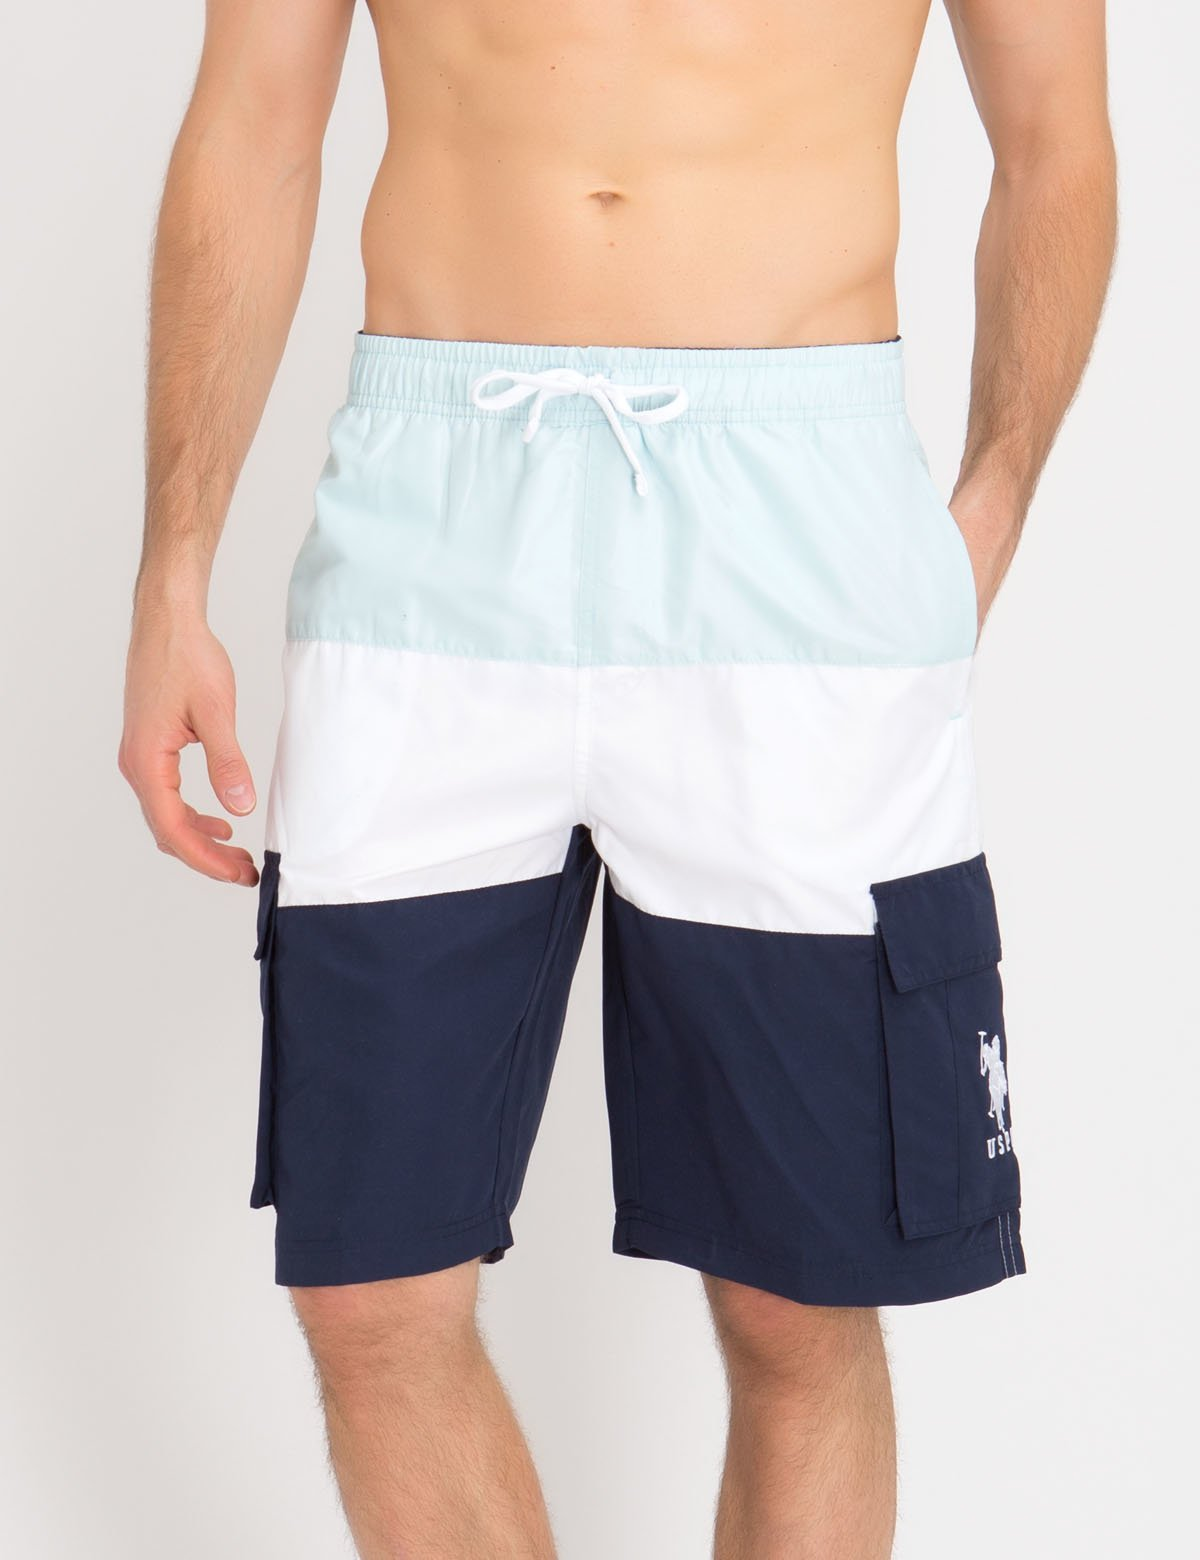 TRI-COLORBLOCK CARGO SWIM TRUNKS